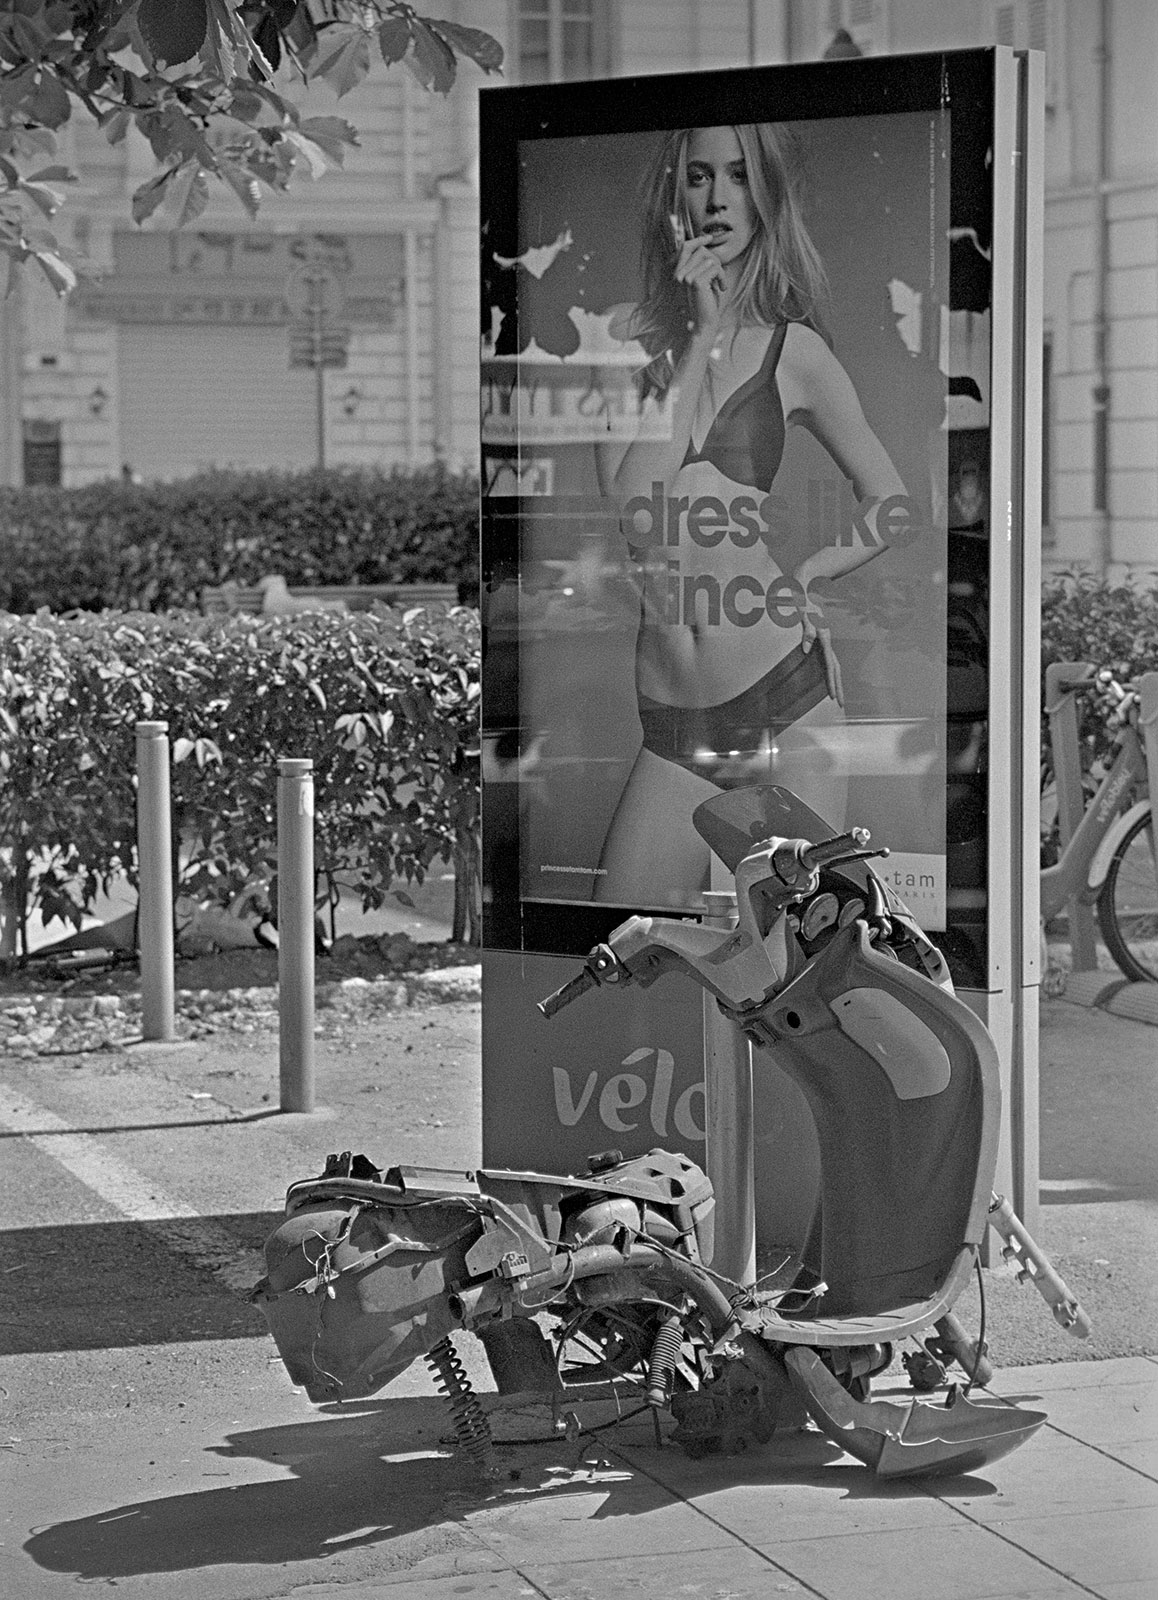 Is a broken scooter really that much visually compelling